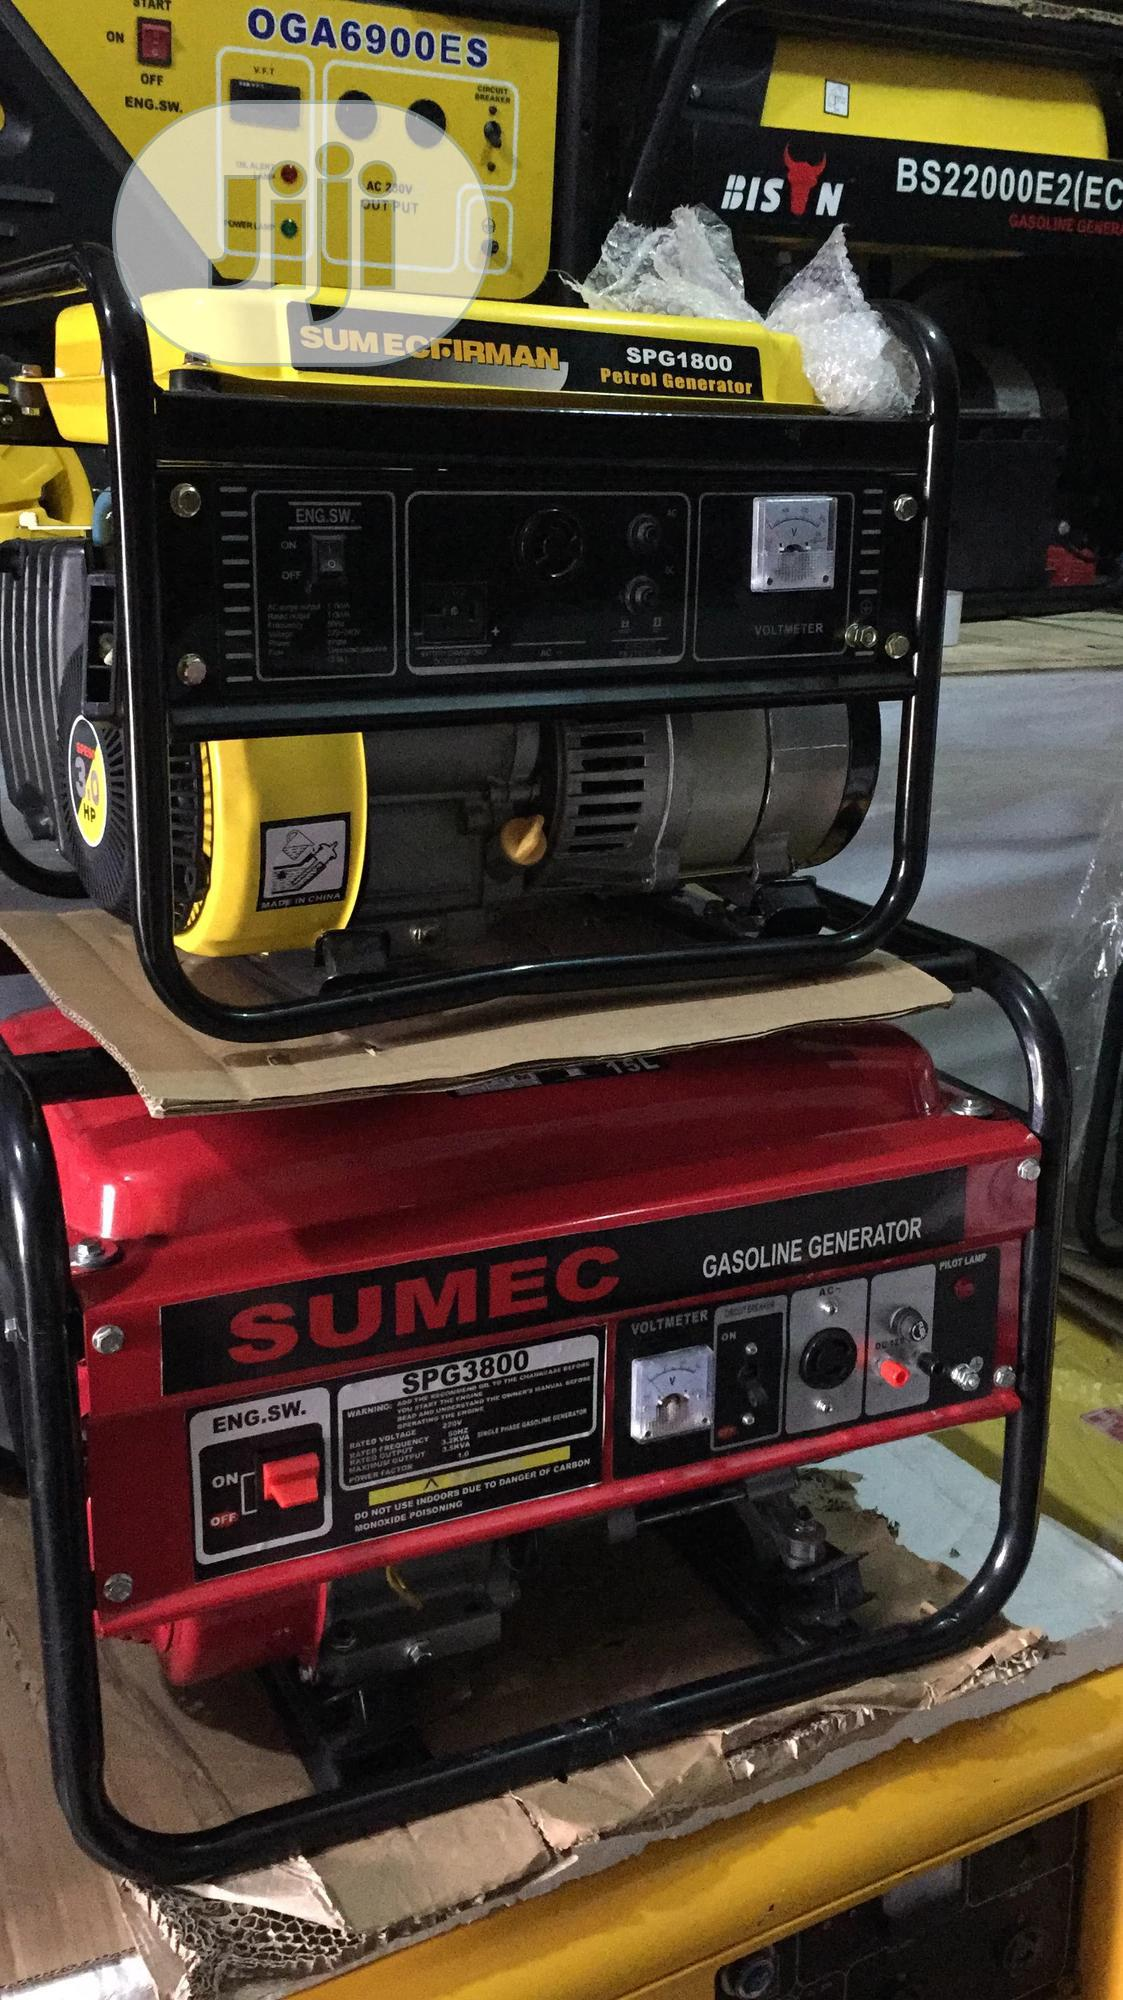 Sumec Firman Spg1800 Generator,Pure Copper